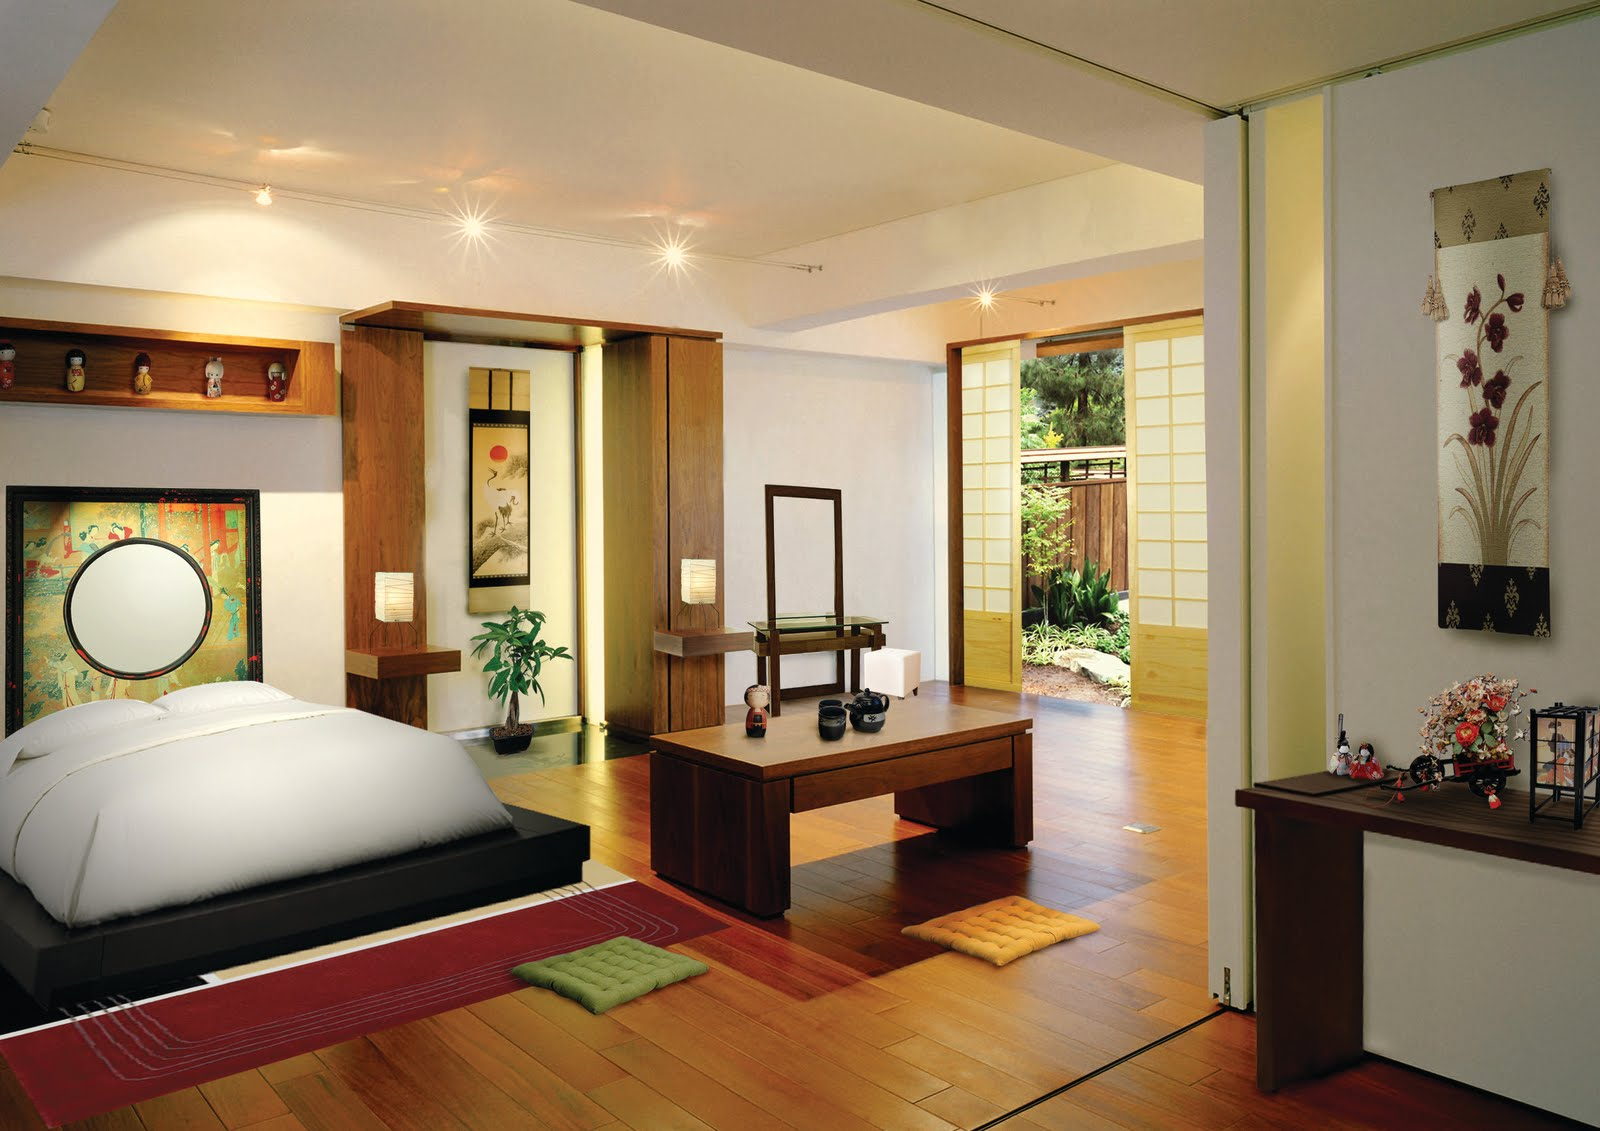 Melokumi japanese style bedroom design for Japanese bedroom ideas